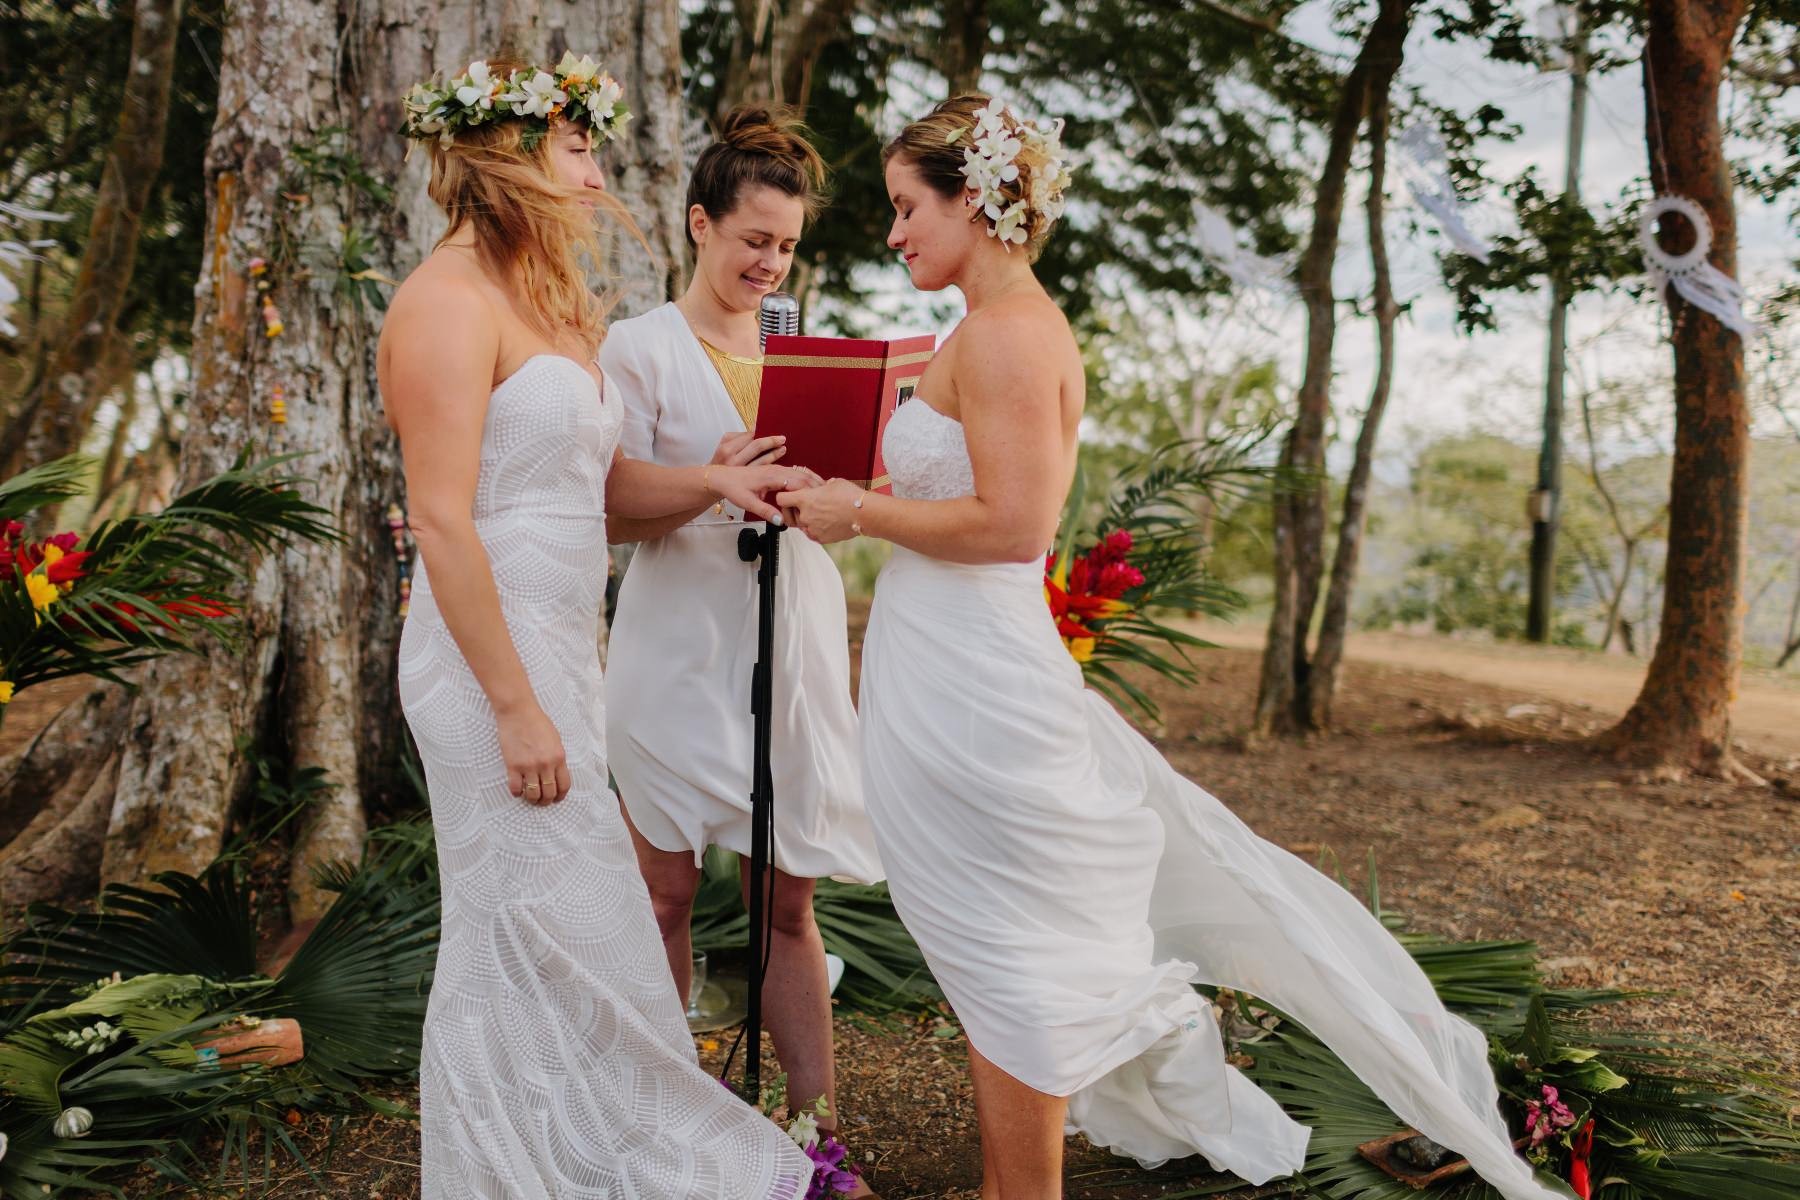 Boho Same-sex wedding under a tree in Costa Rica. Beautiful brides - wedding dress ideas